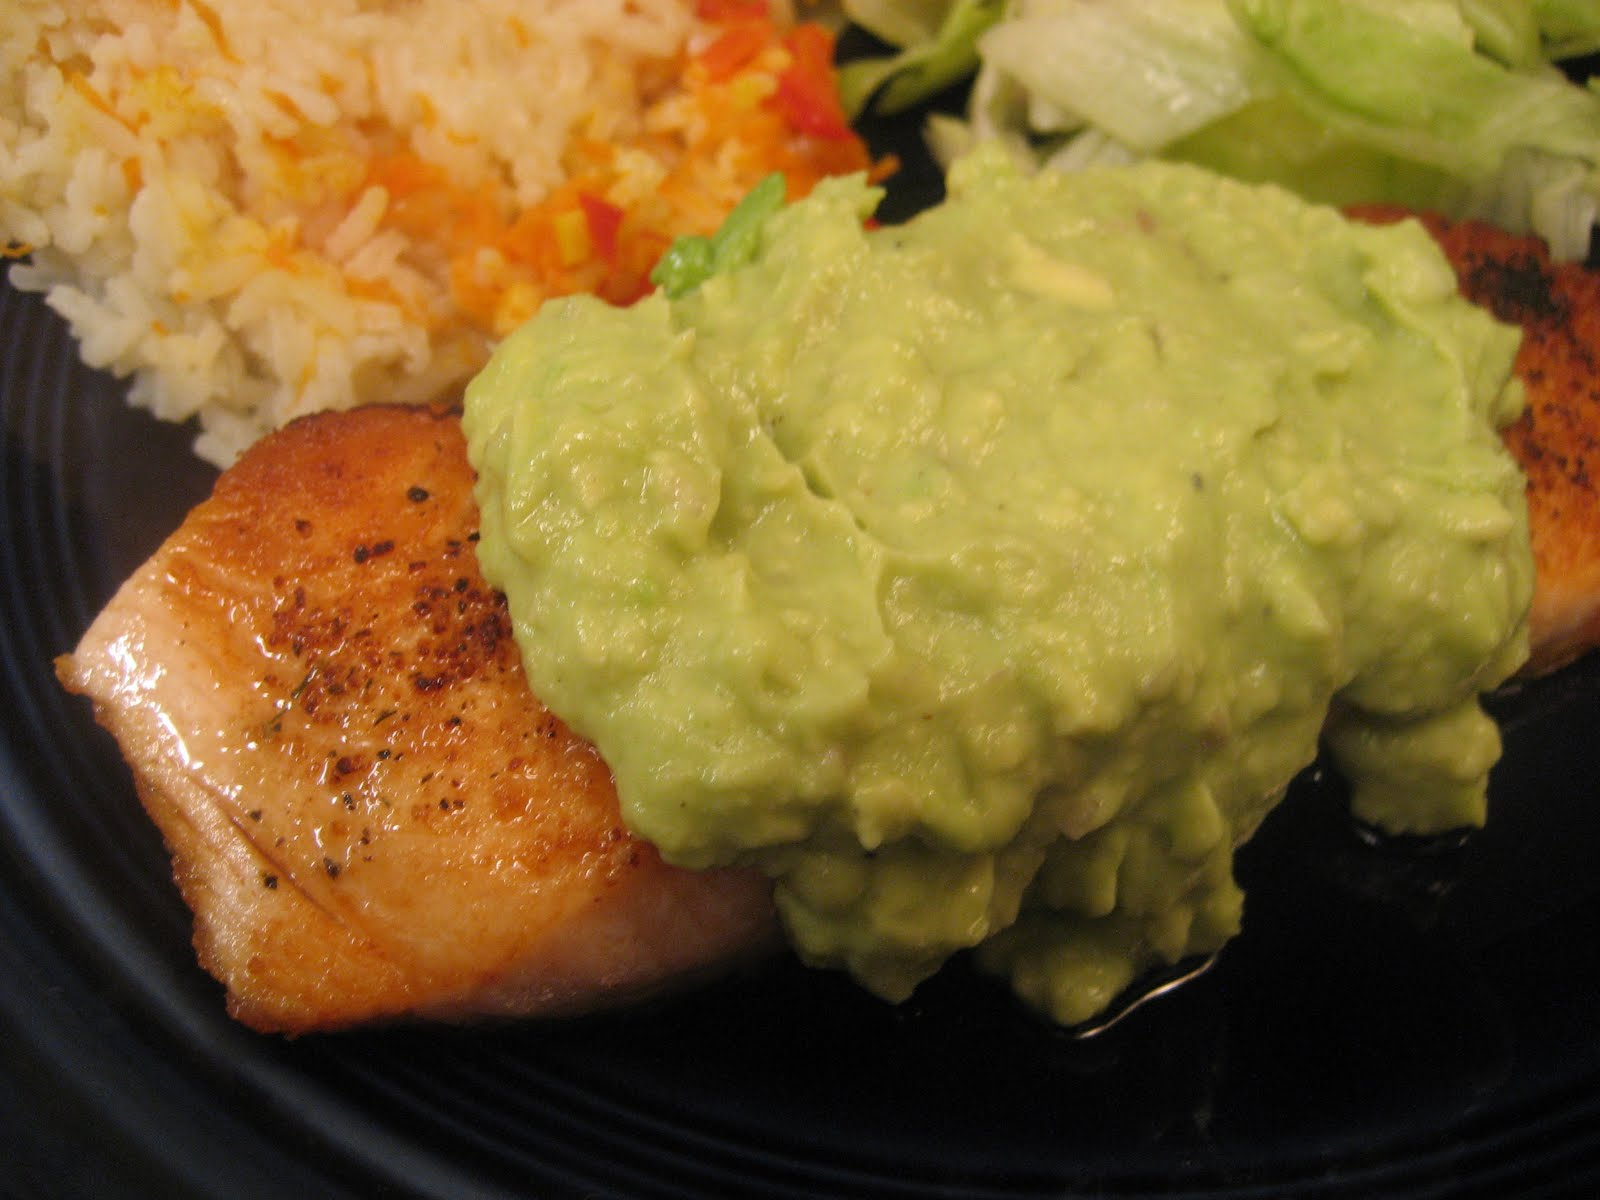 Elizabeth's Dutch Oven: Salmon with Avocado Remoulade